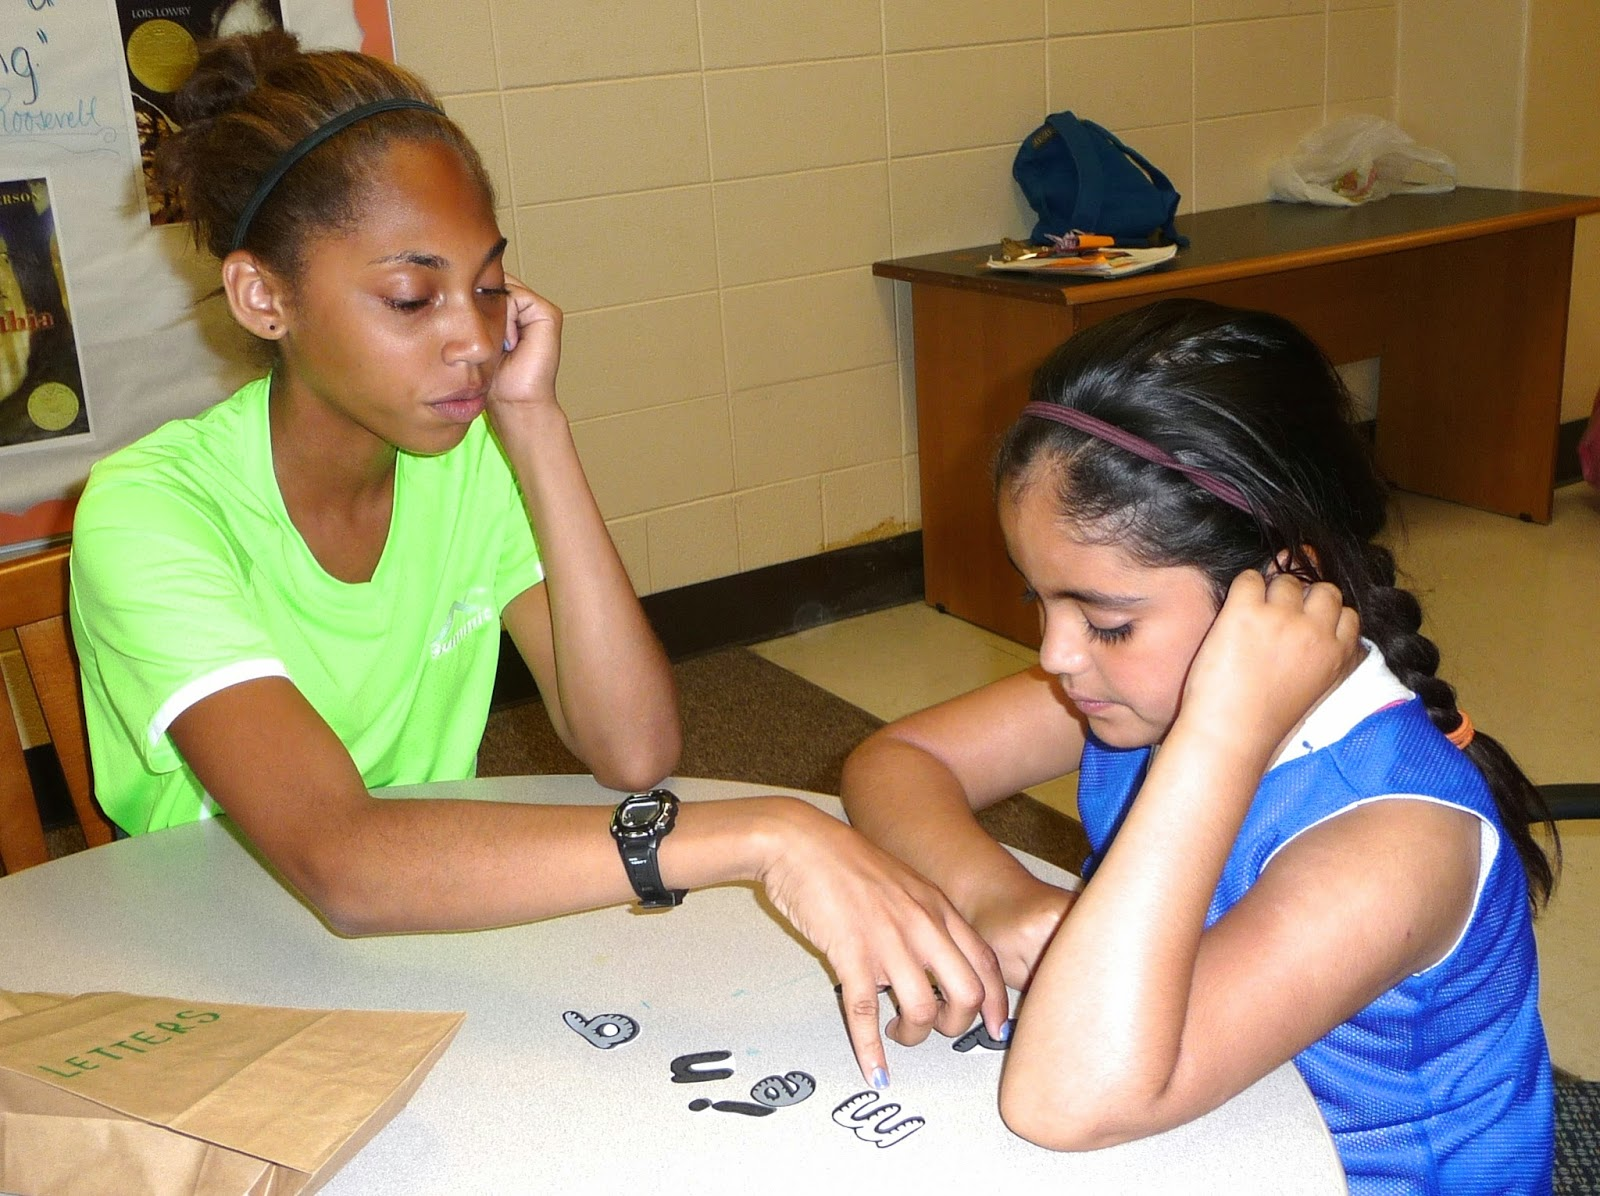 Lauren, a Junior Counselor, helps a girl on her team during reading class